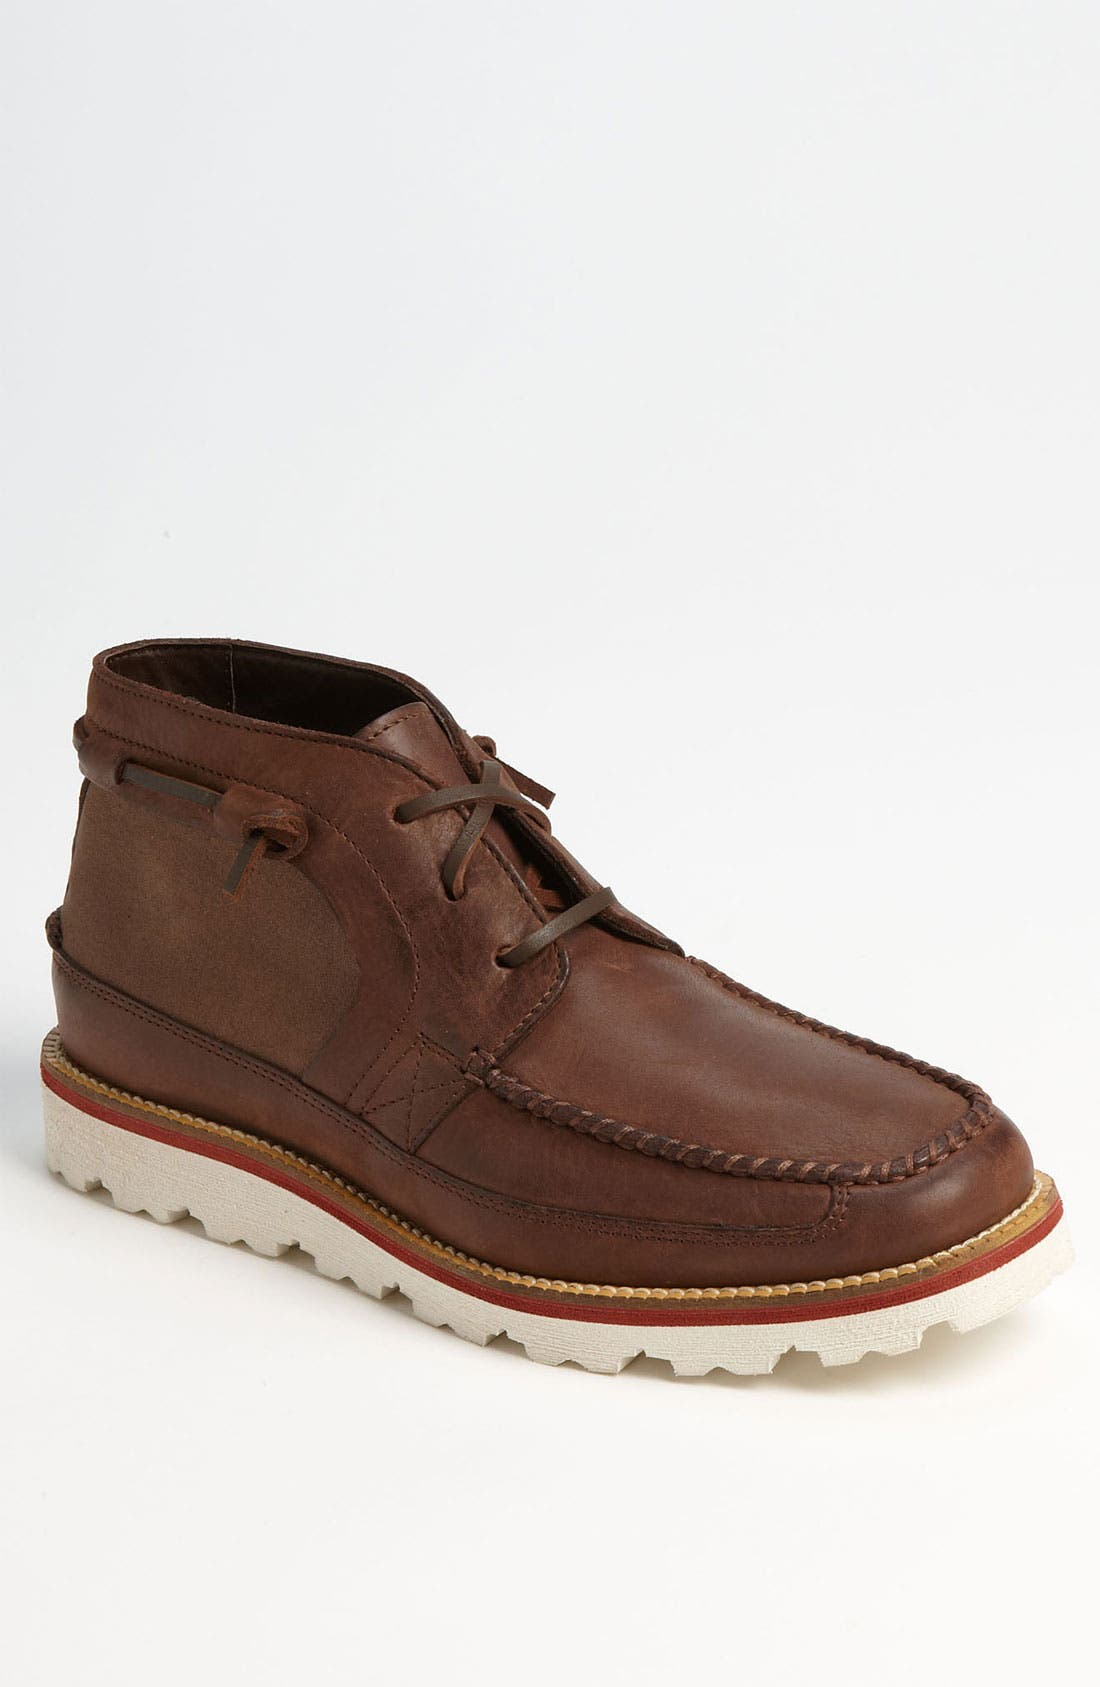 Alternate Image 1 Selected - Cole Haan 'Air Bretton' Chukka Boot